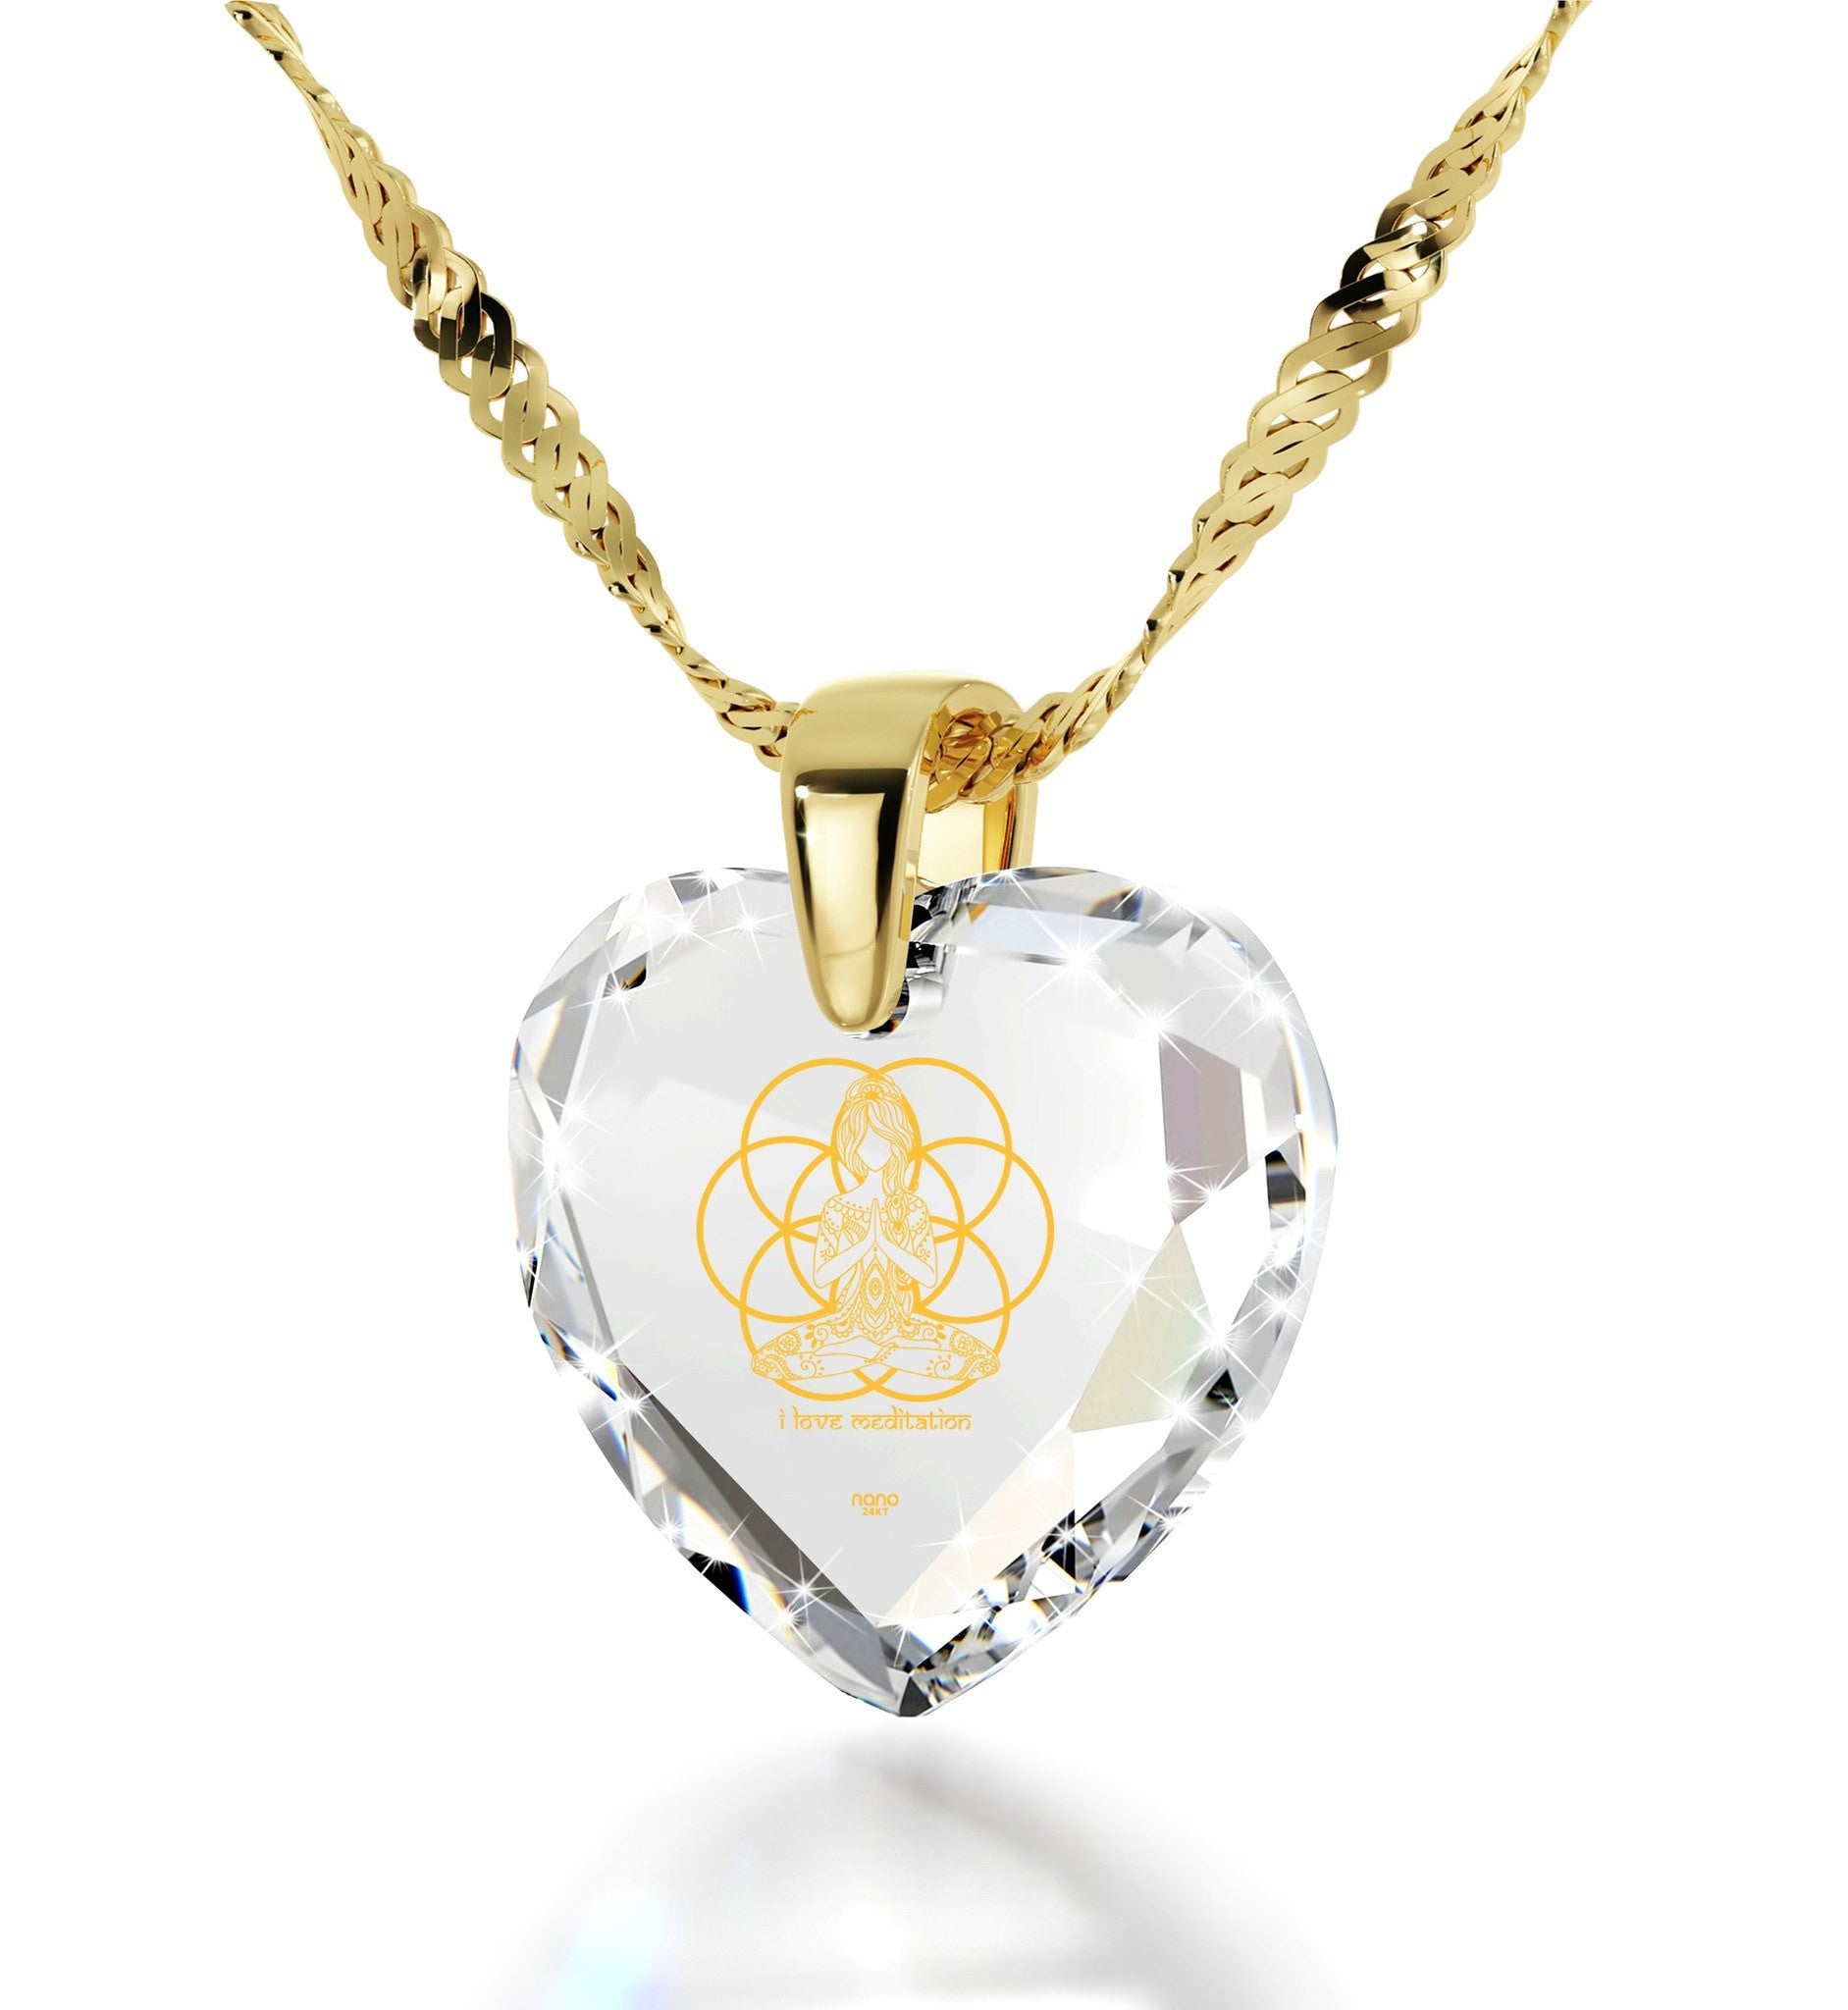 """""I Love Meditation"" Engraved in 24k, BuddhistStore with SwarovskiCrystalJewelry, BuddhistJewellery, HeartShapedNecklace"""